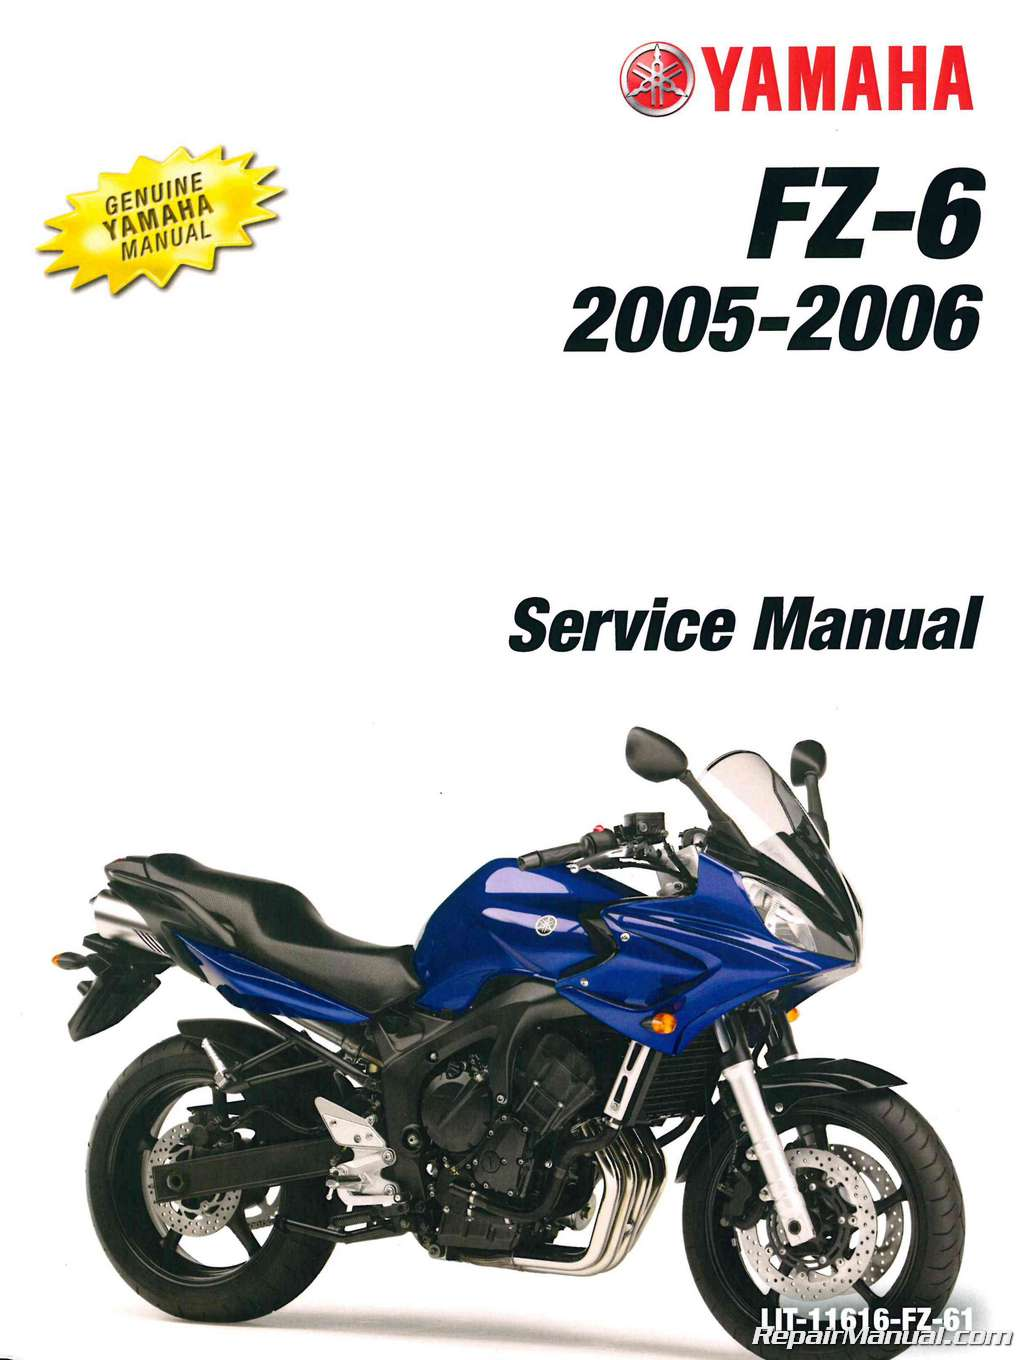 Fz600 Wiring Diagram Explained Diagrams 1986 Yamaha Fazer Fz 600 1988 Moreover Parts